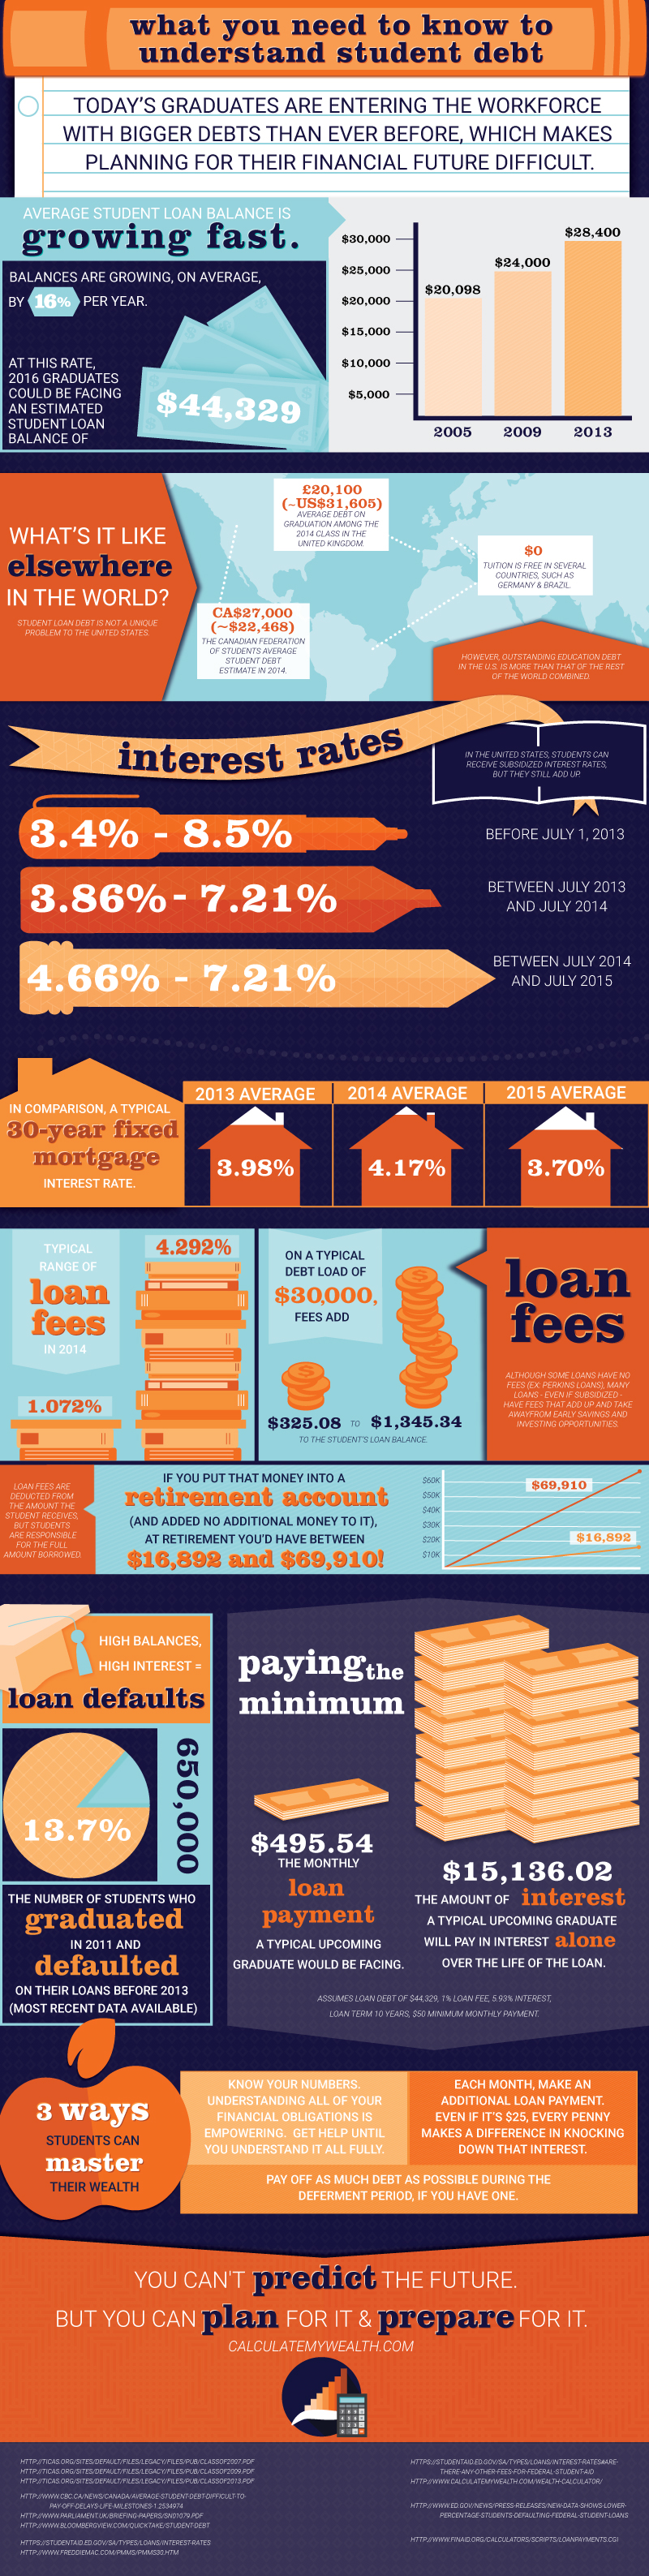 What You Need to Know to Understand Student Debt (INFOGRAPHIC)